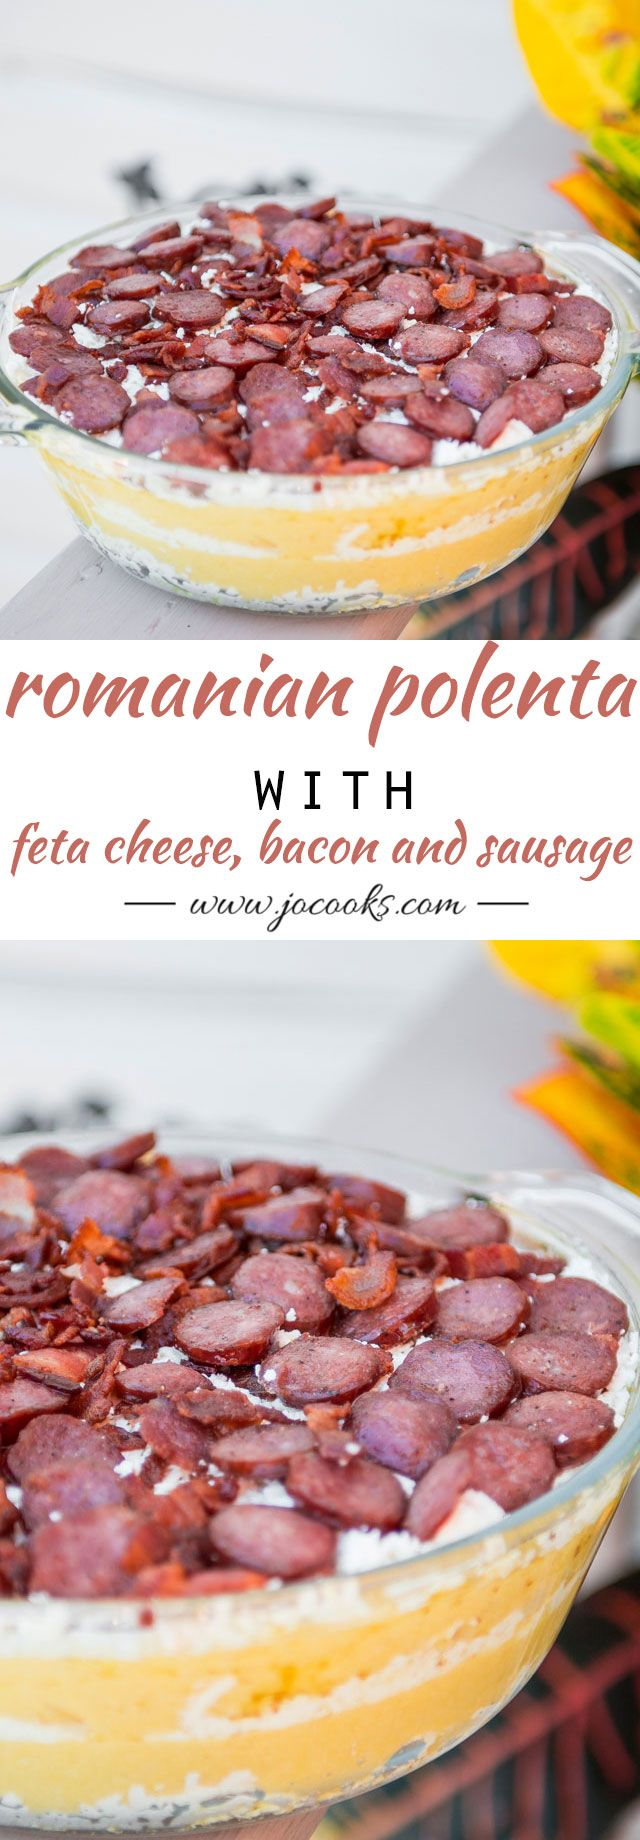 Traditional Romanian Polenta with Feta Cheese, Bacon and Sausage known as Mamaliga cu Branza in Paturi is a dish I've grown up with and am very fond of. It's hearty, delicious and satisfying.